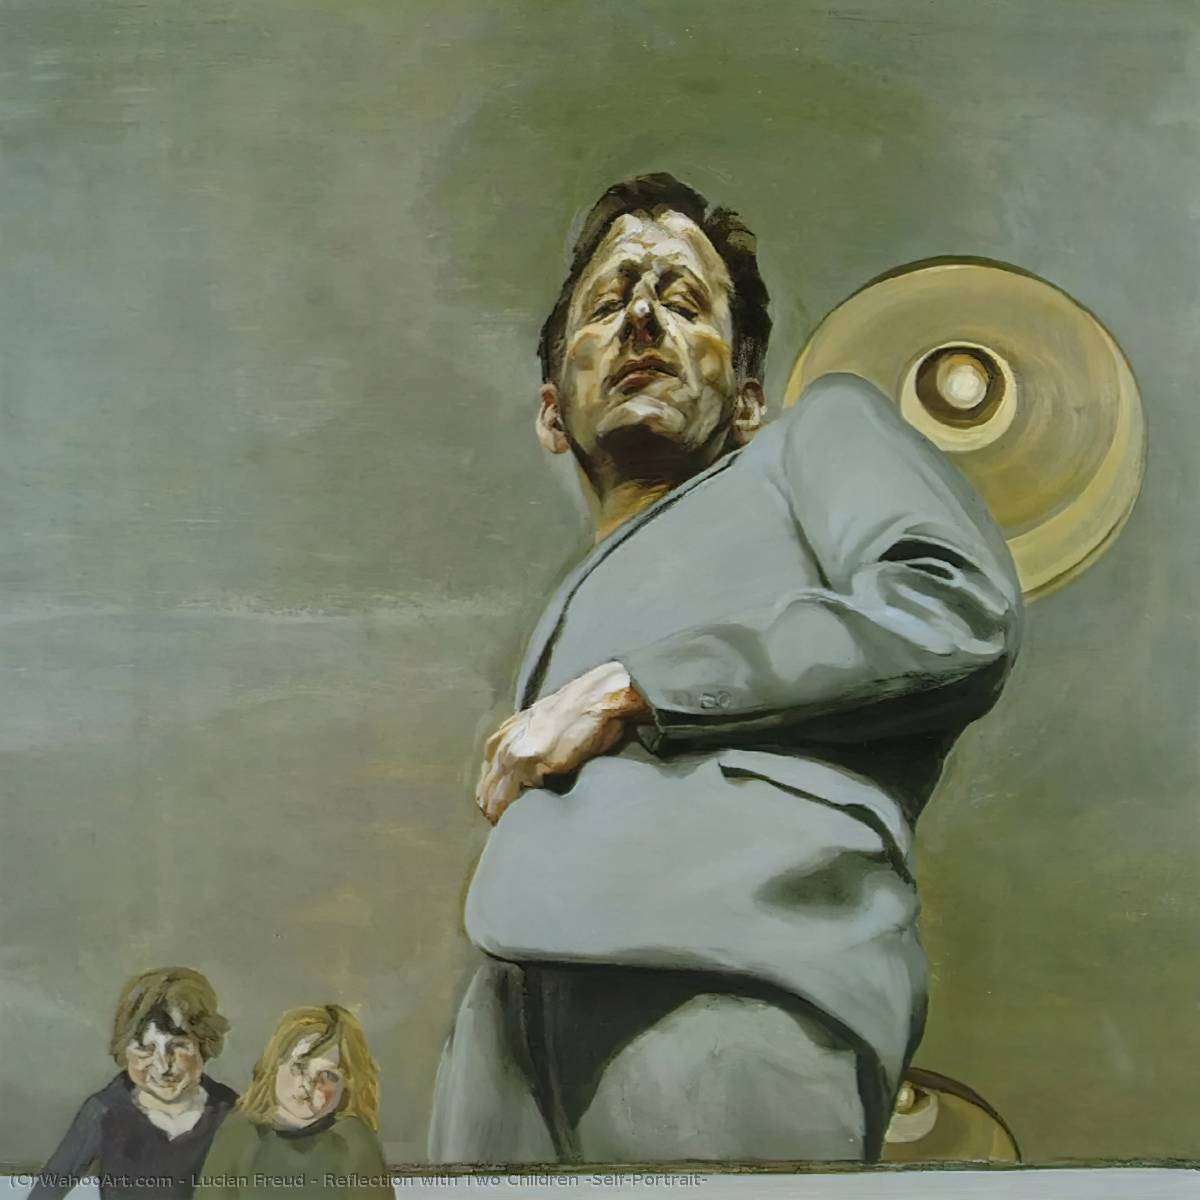 famous painting Reflection with Two Children (Self-Portrait) of Lucian Freud